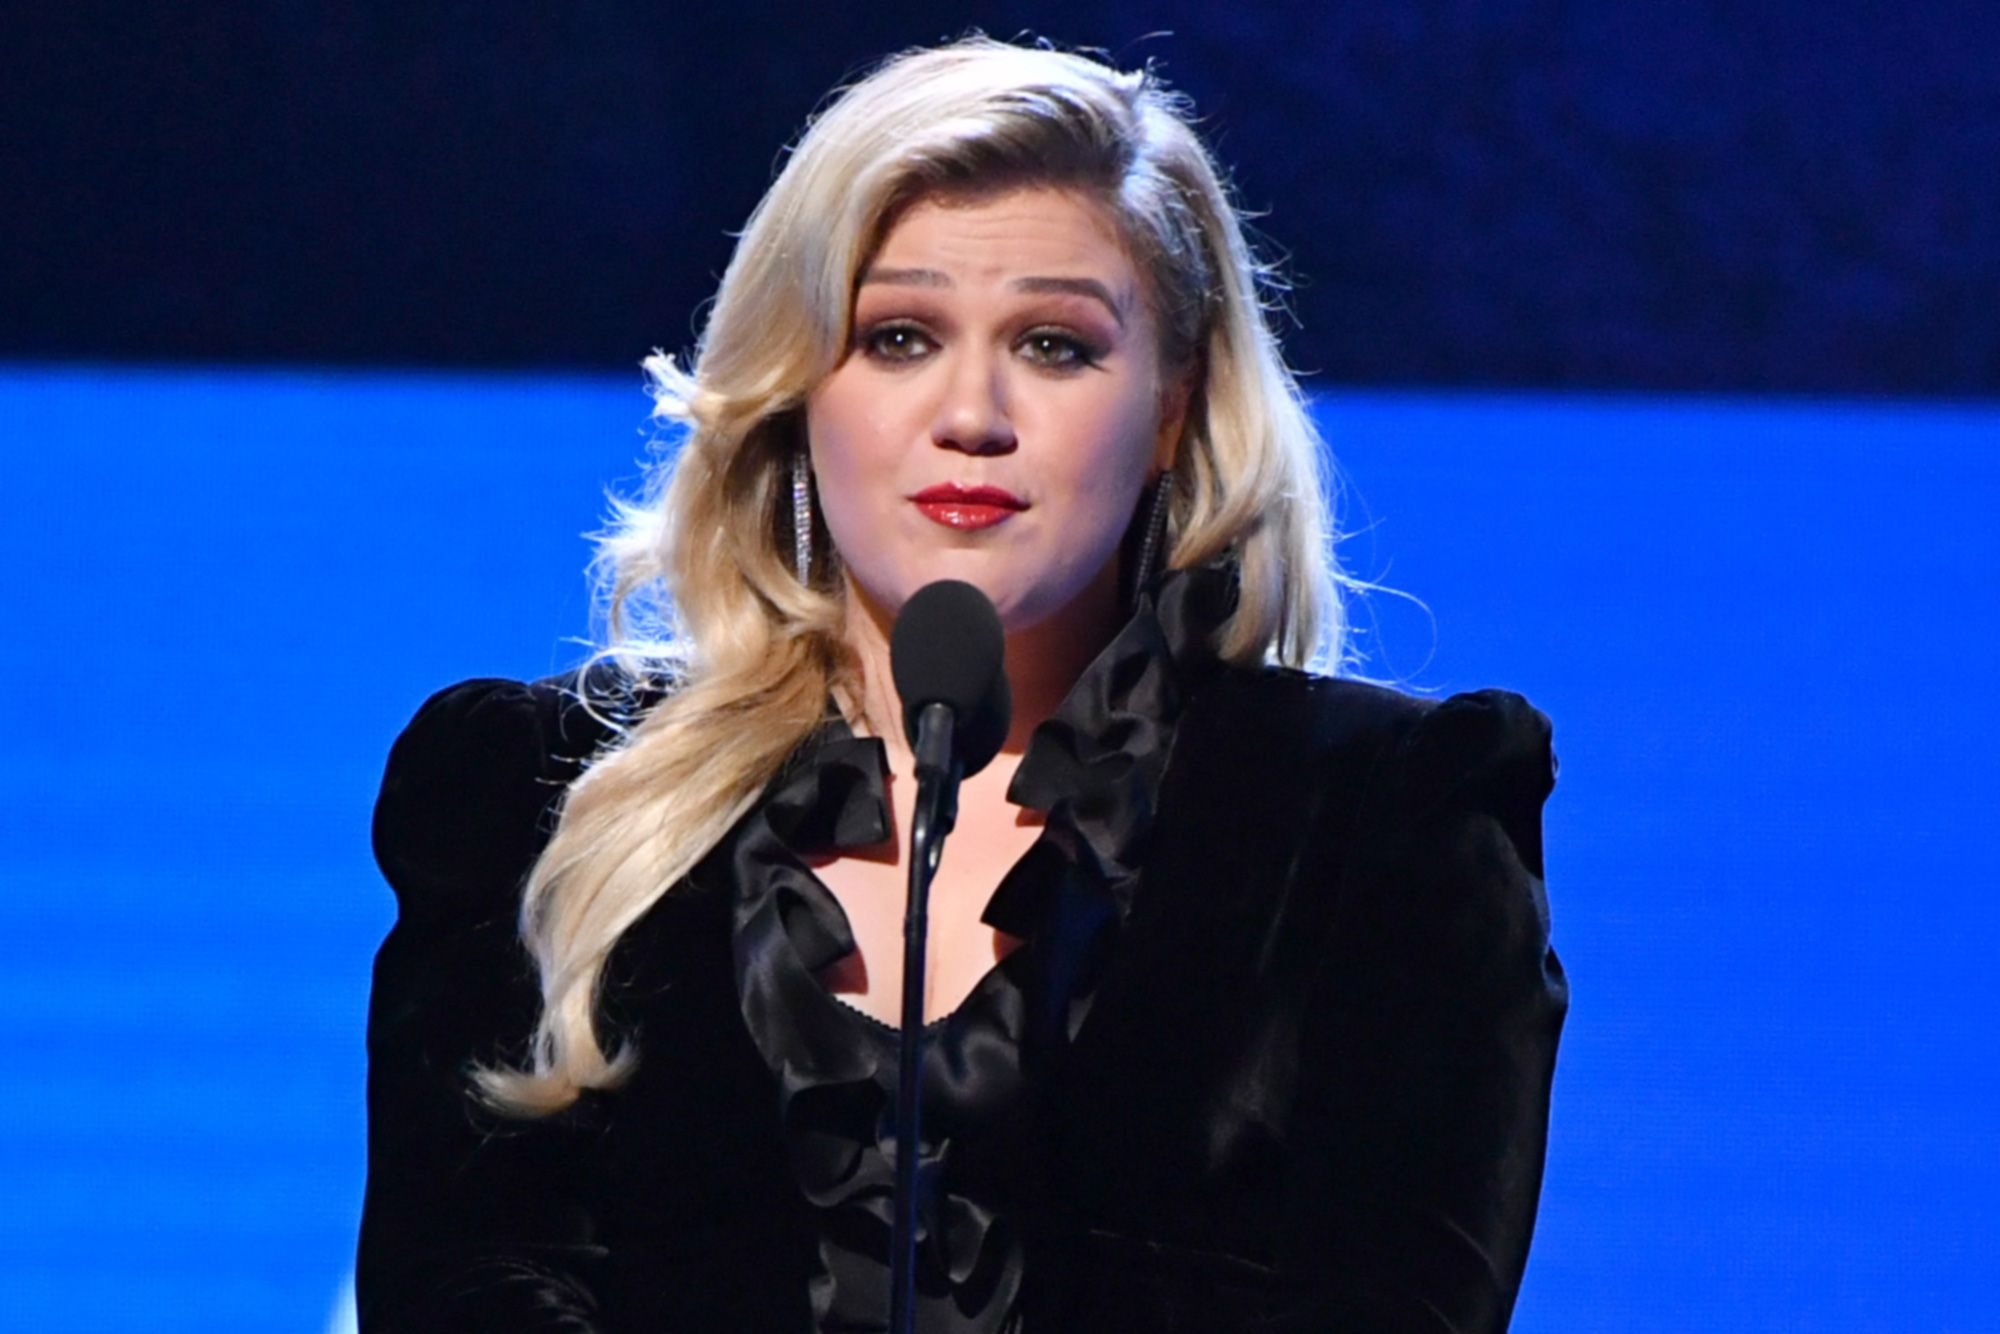 kelly clarkson is not good after Divorce